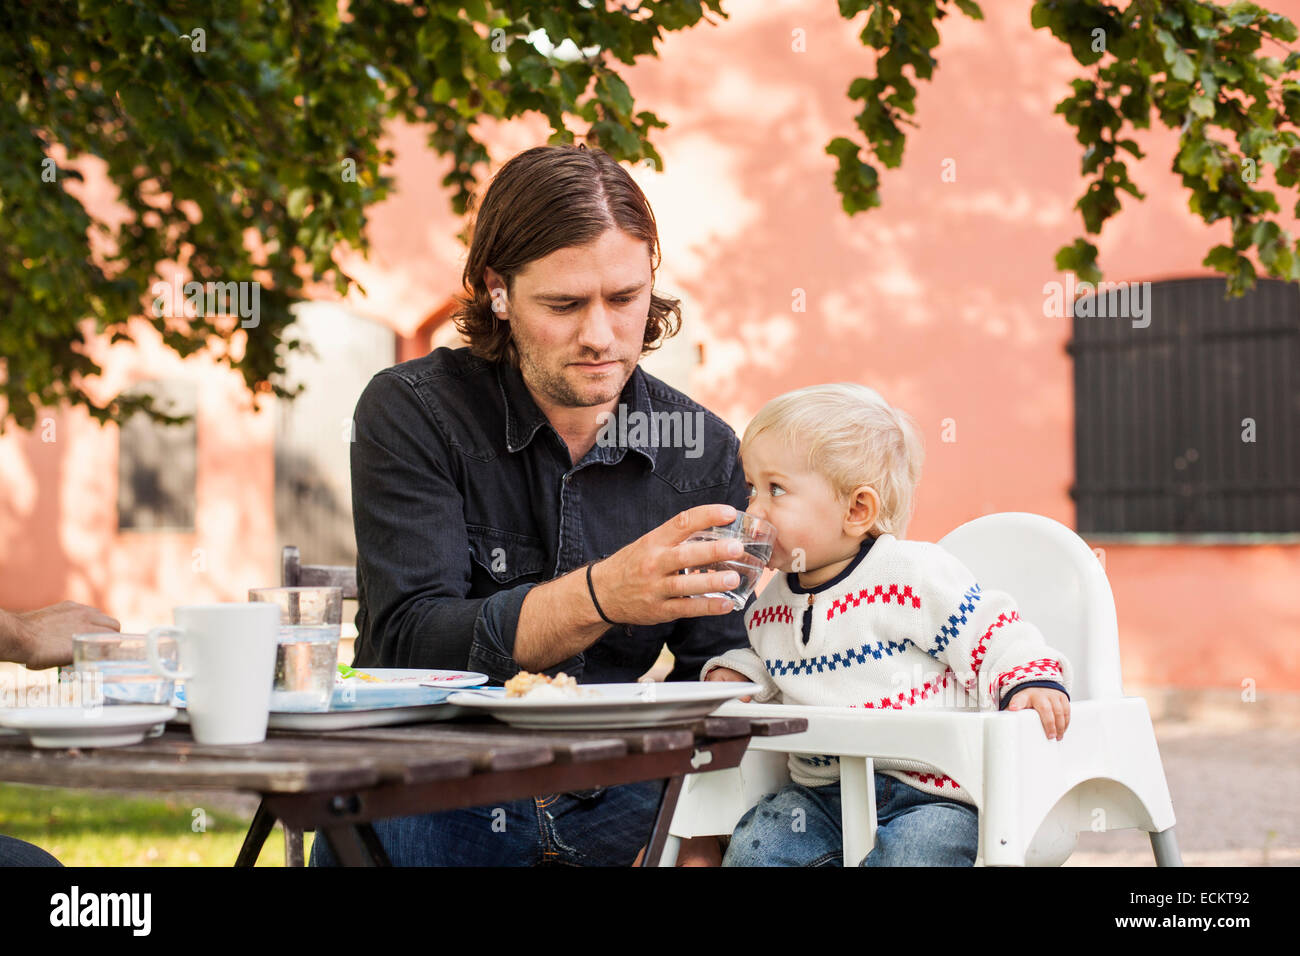 Father feeding water to baby girl in park - Stock Image